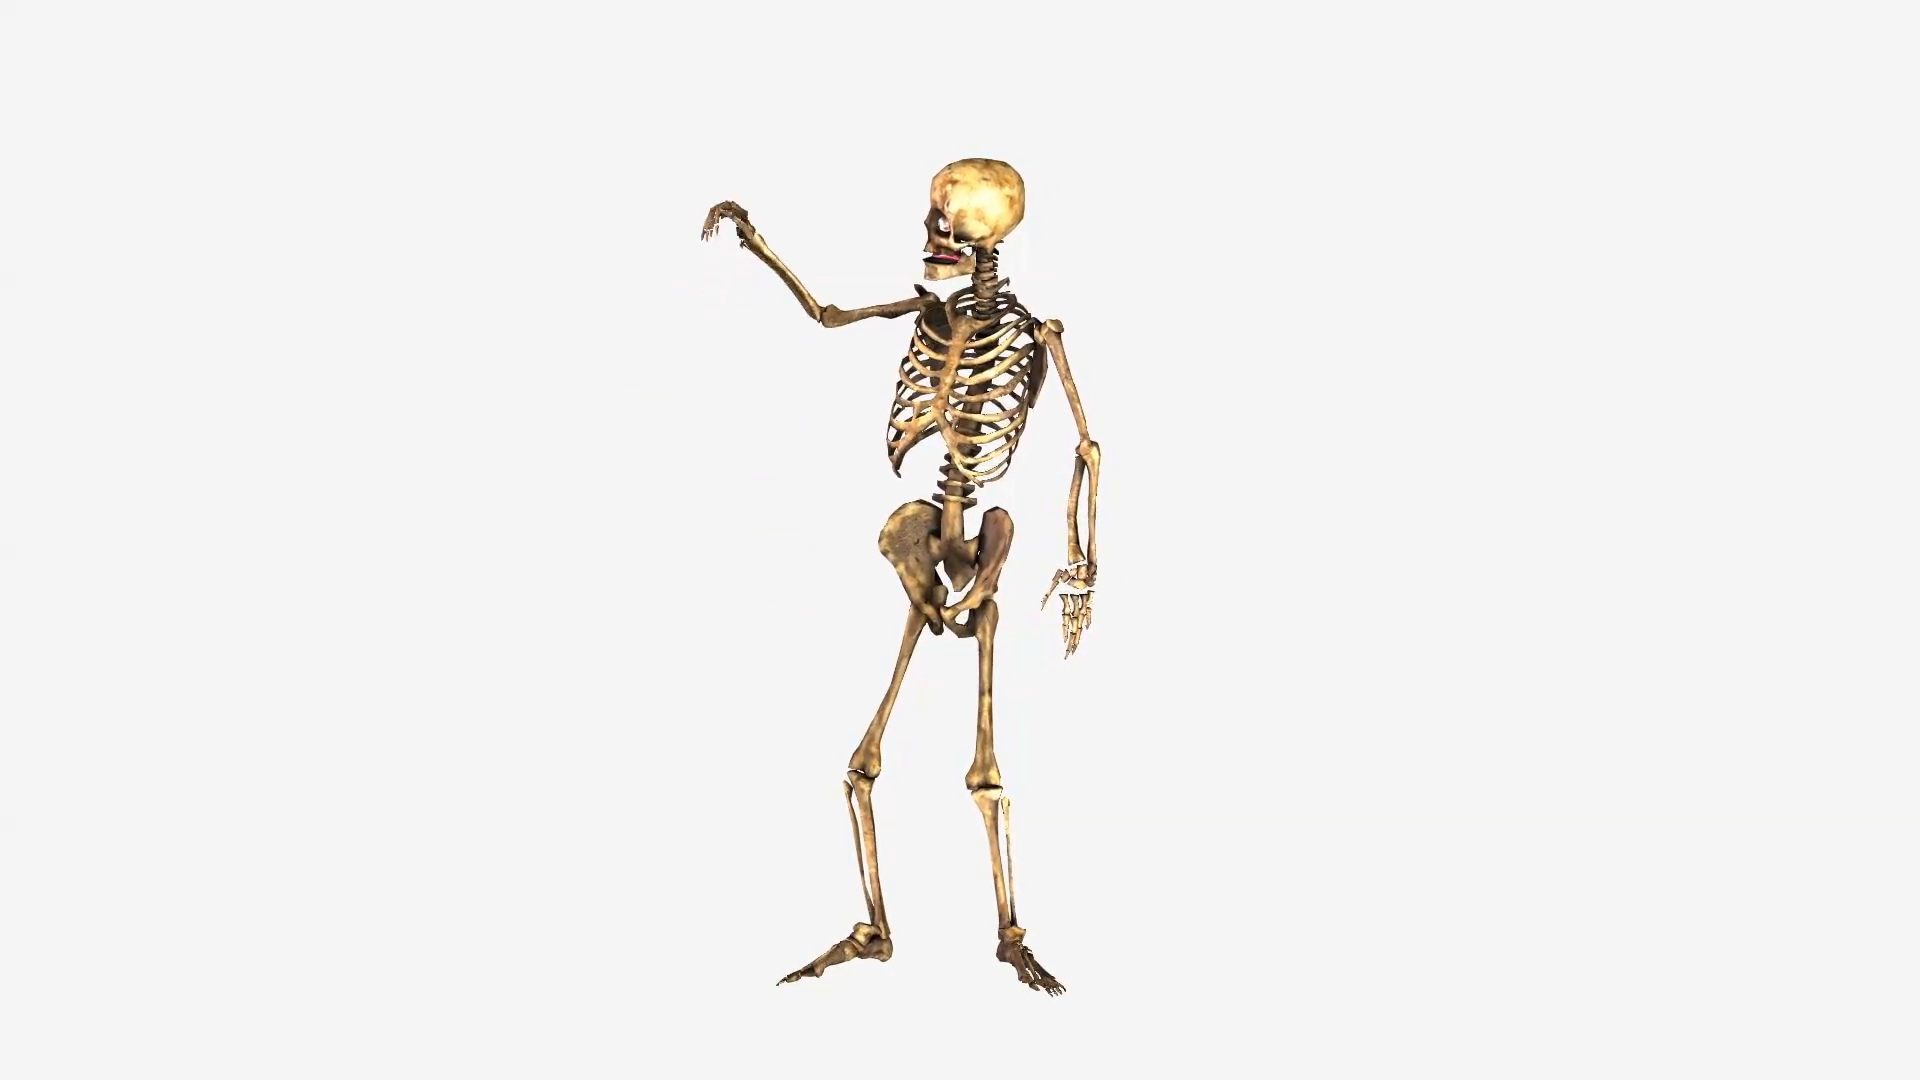 Dancing Skeleton Png (113+ images in Collection) Page 1.